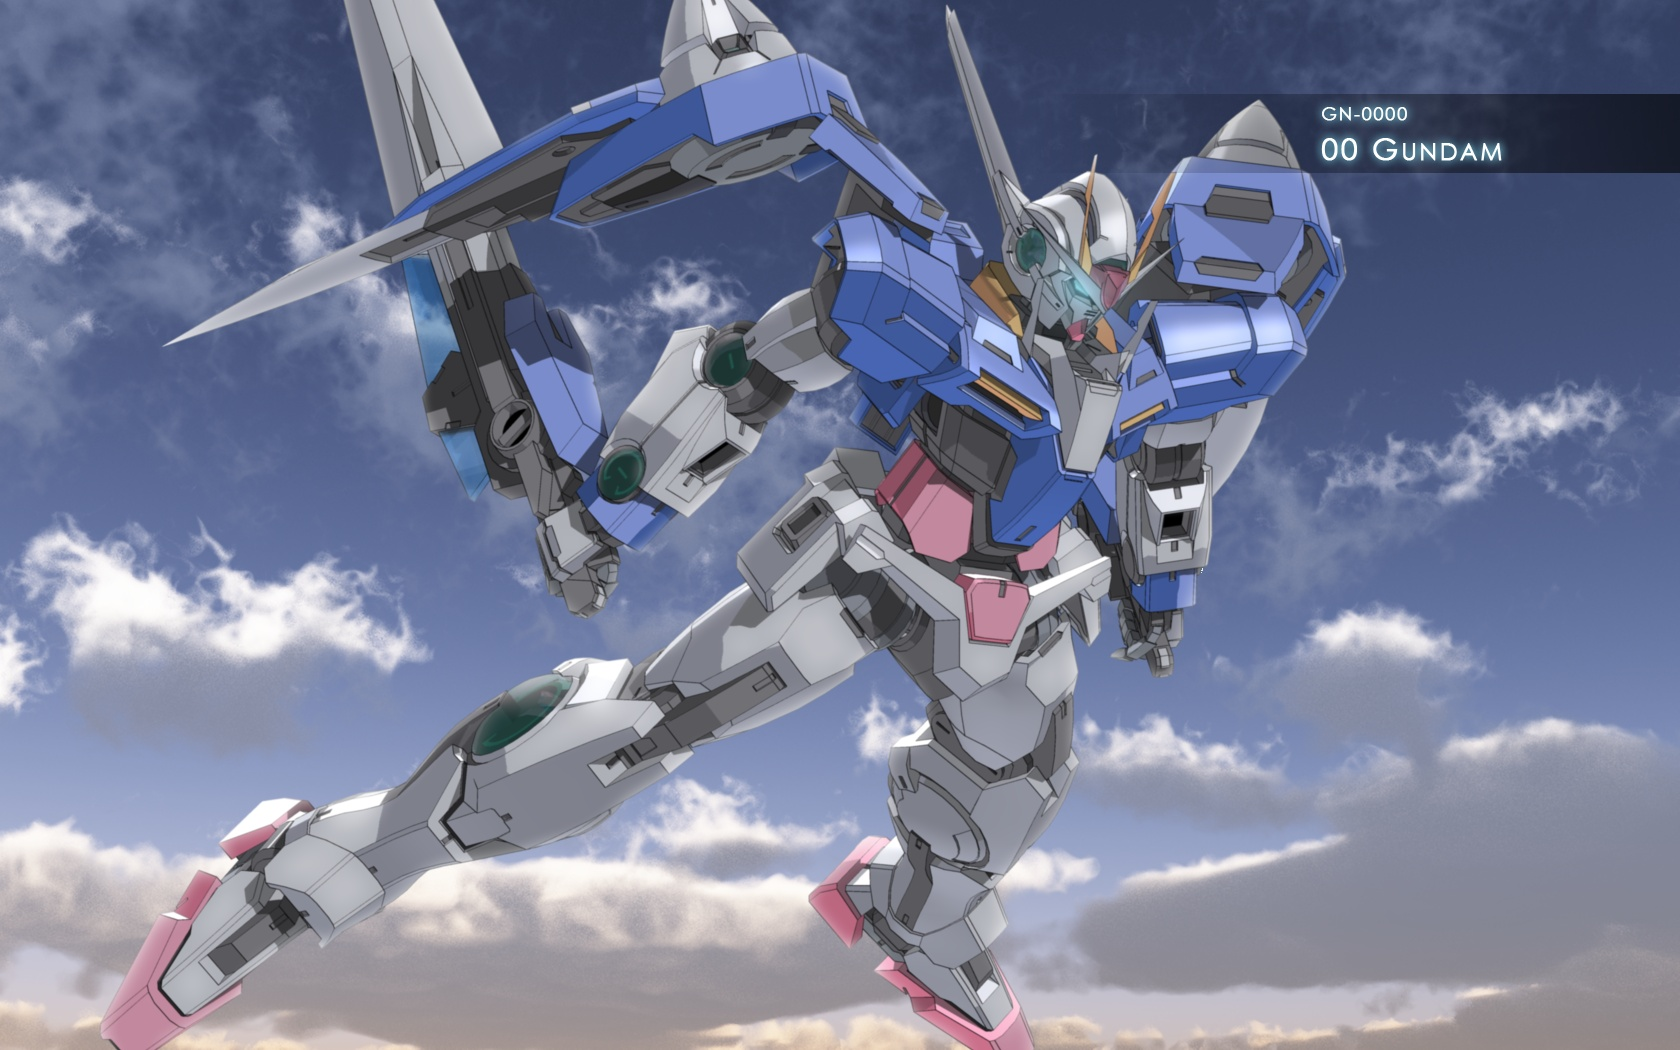 Mobile Suit Gundam 00 Wallpaper #185519 - Zerochan Anime